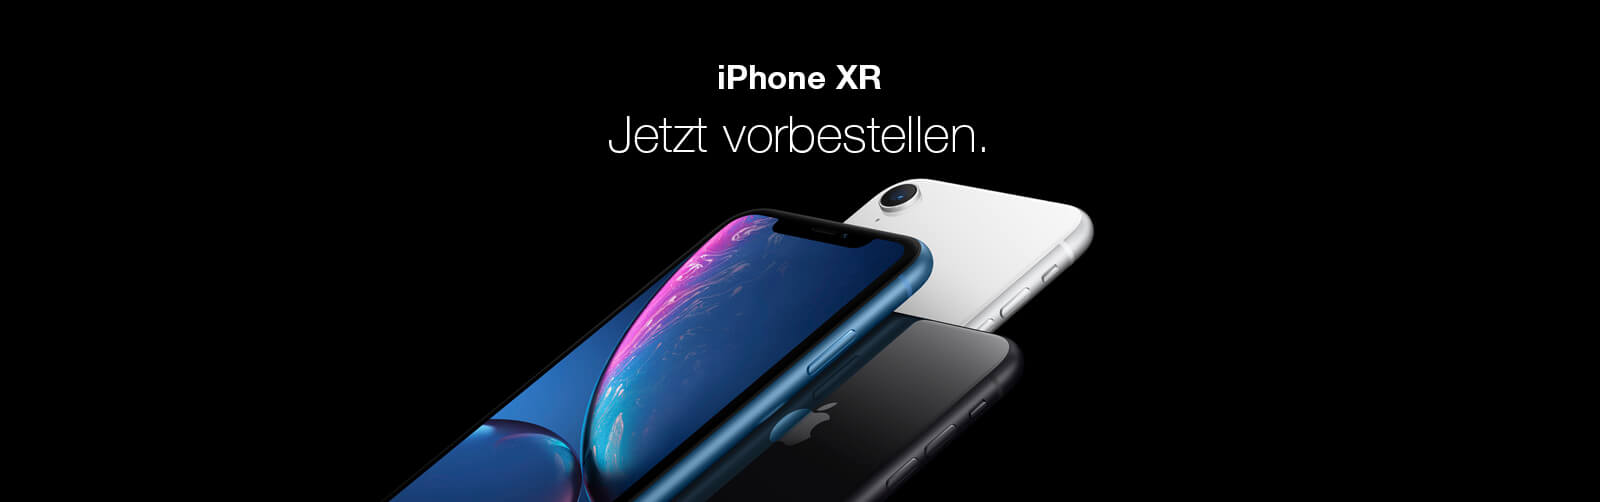 KW_43_2018_Apple_iPhoneXR_DE.jpg